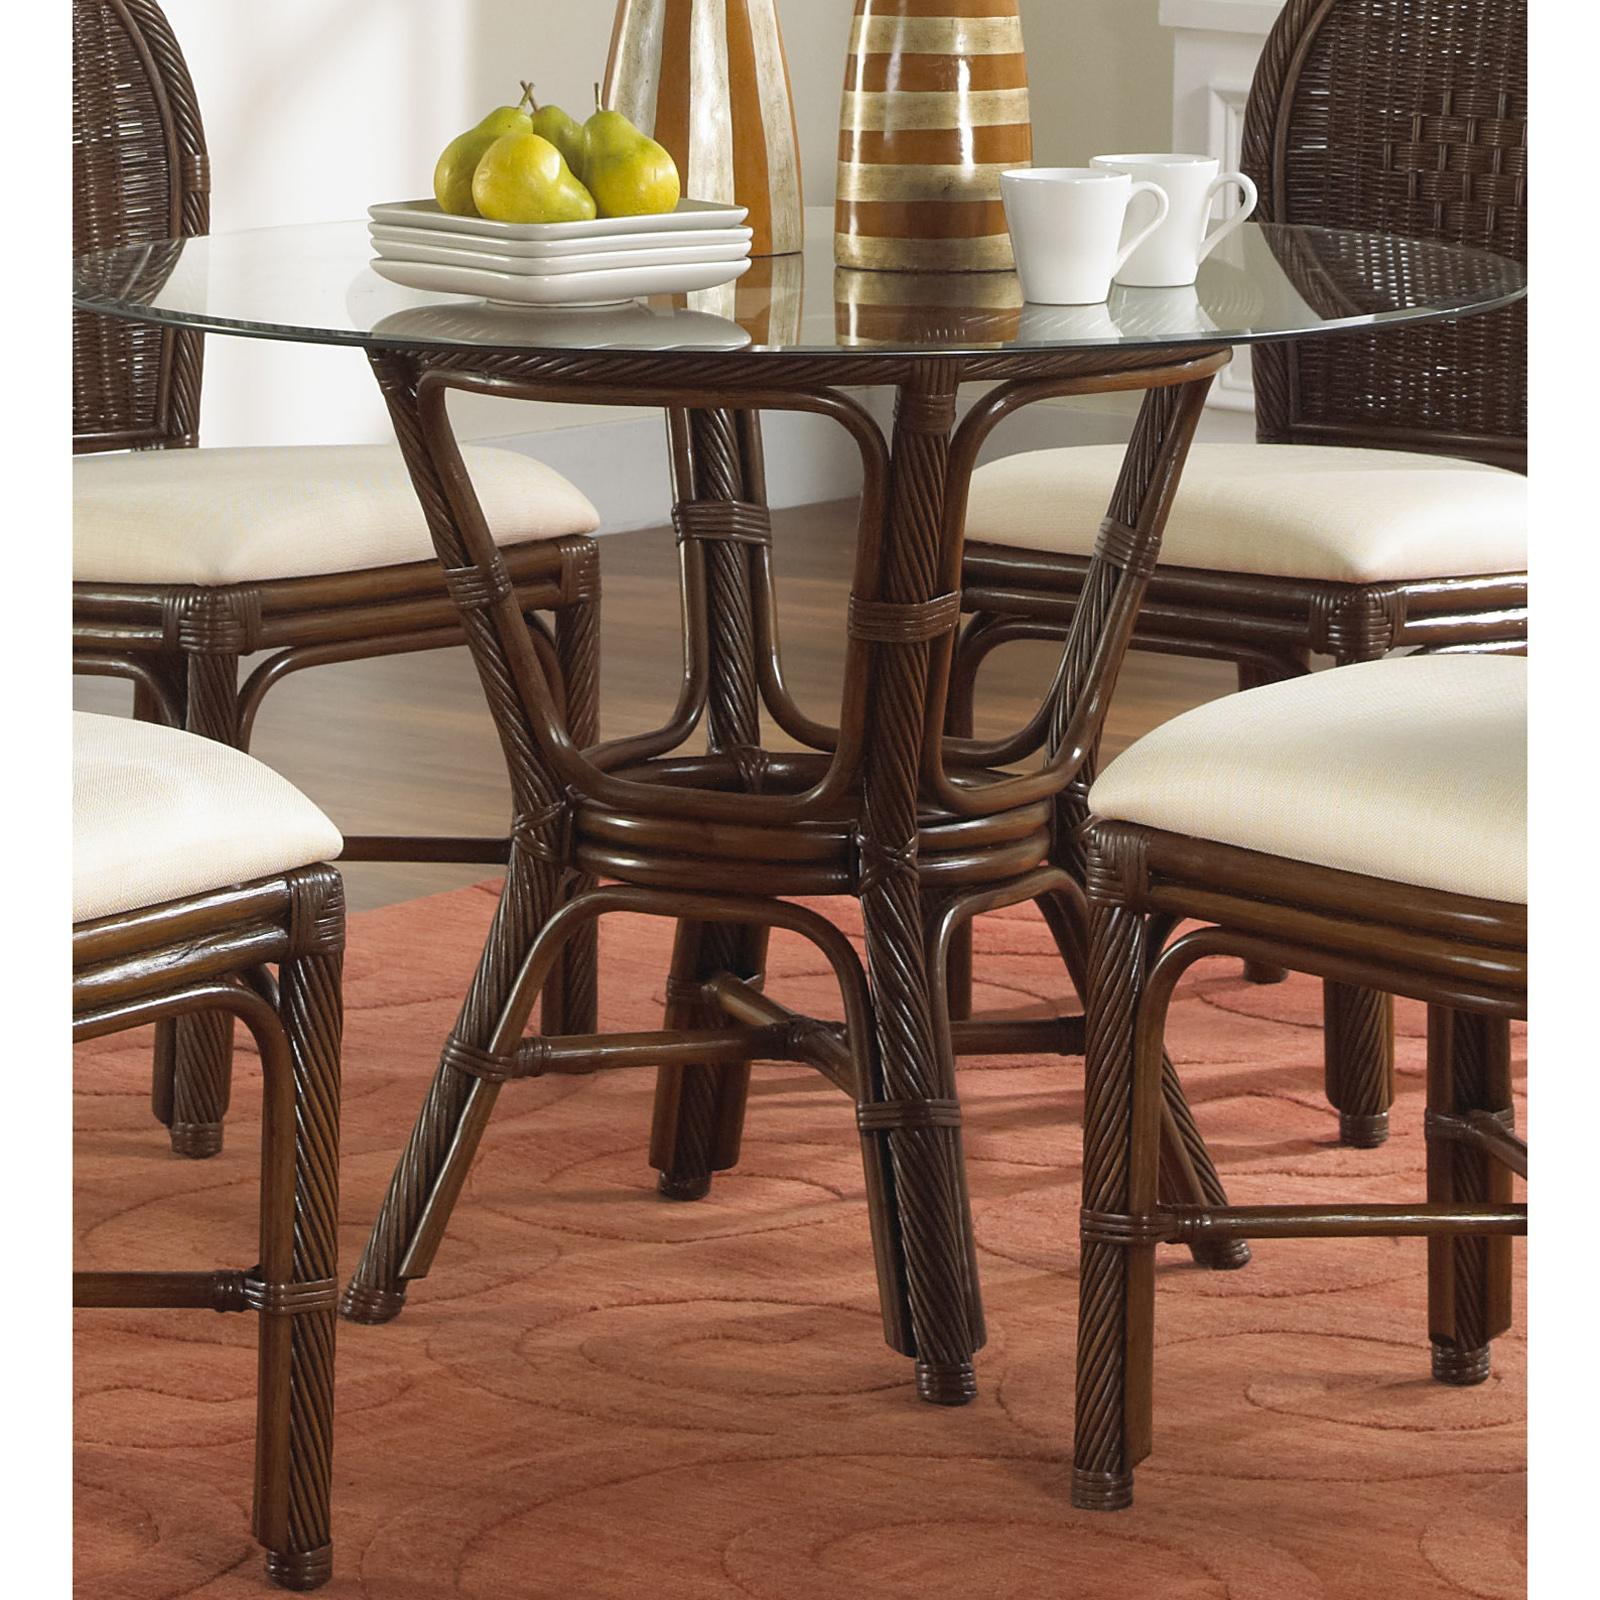 42 round glass dining table hospitality rattan key west indoor rattan amp wicker 42 in 7358